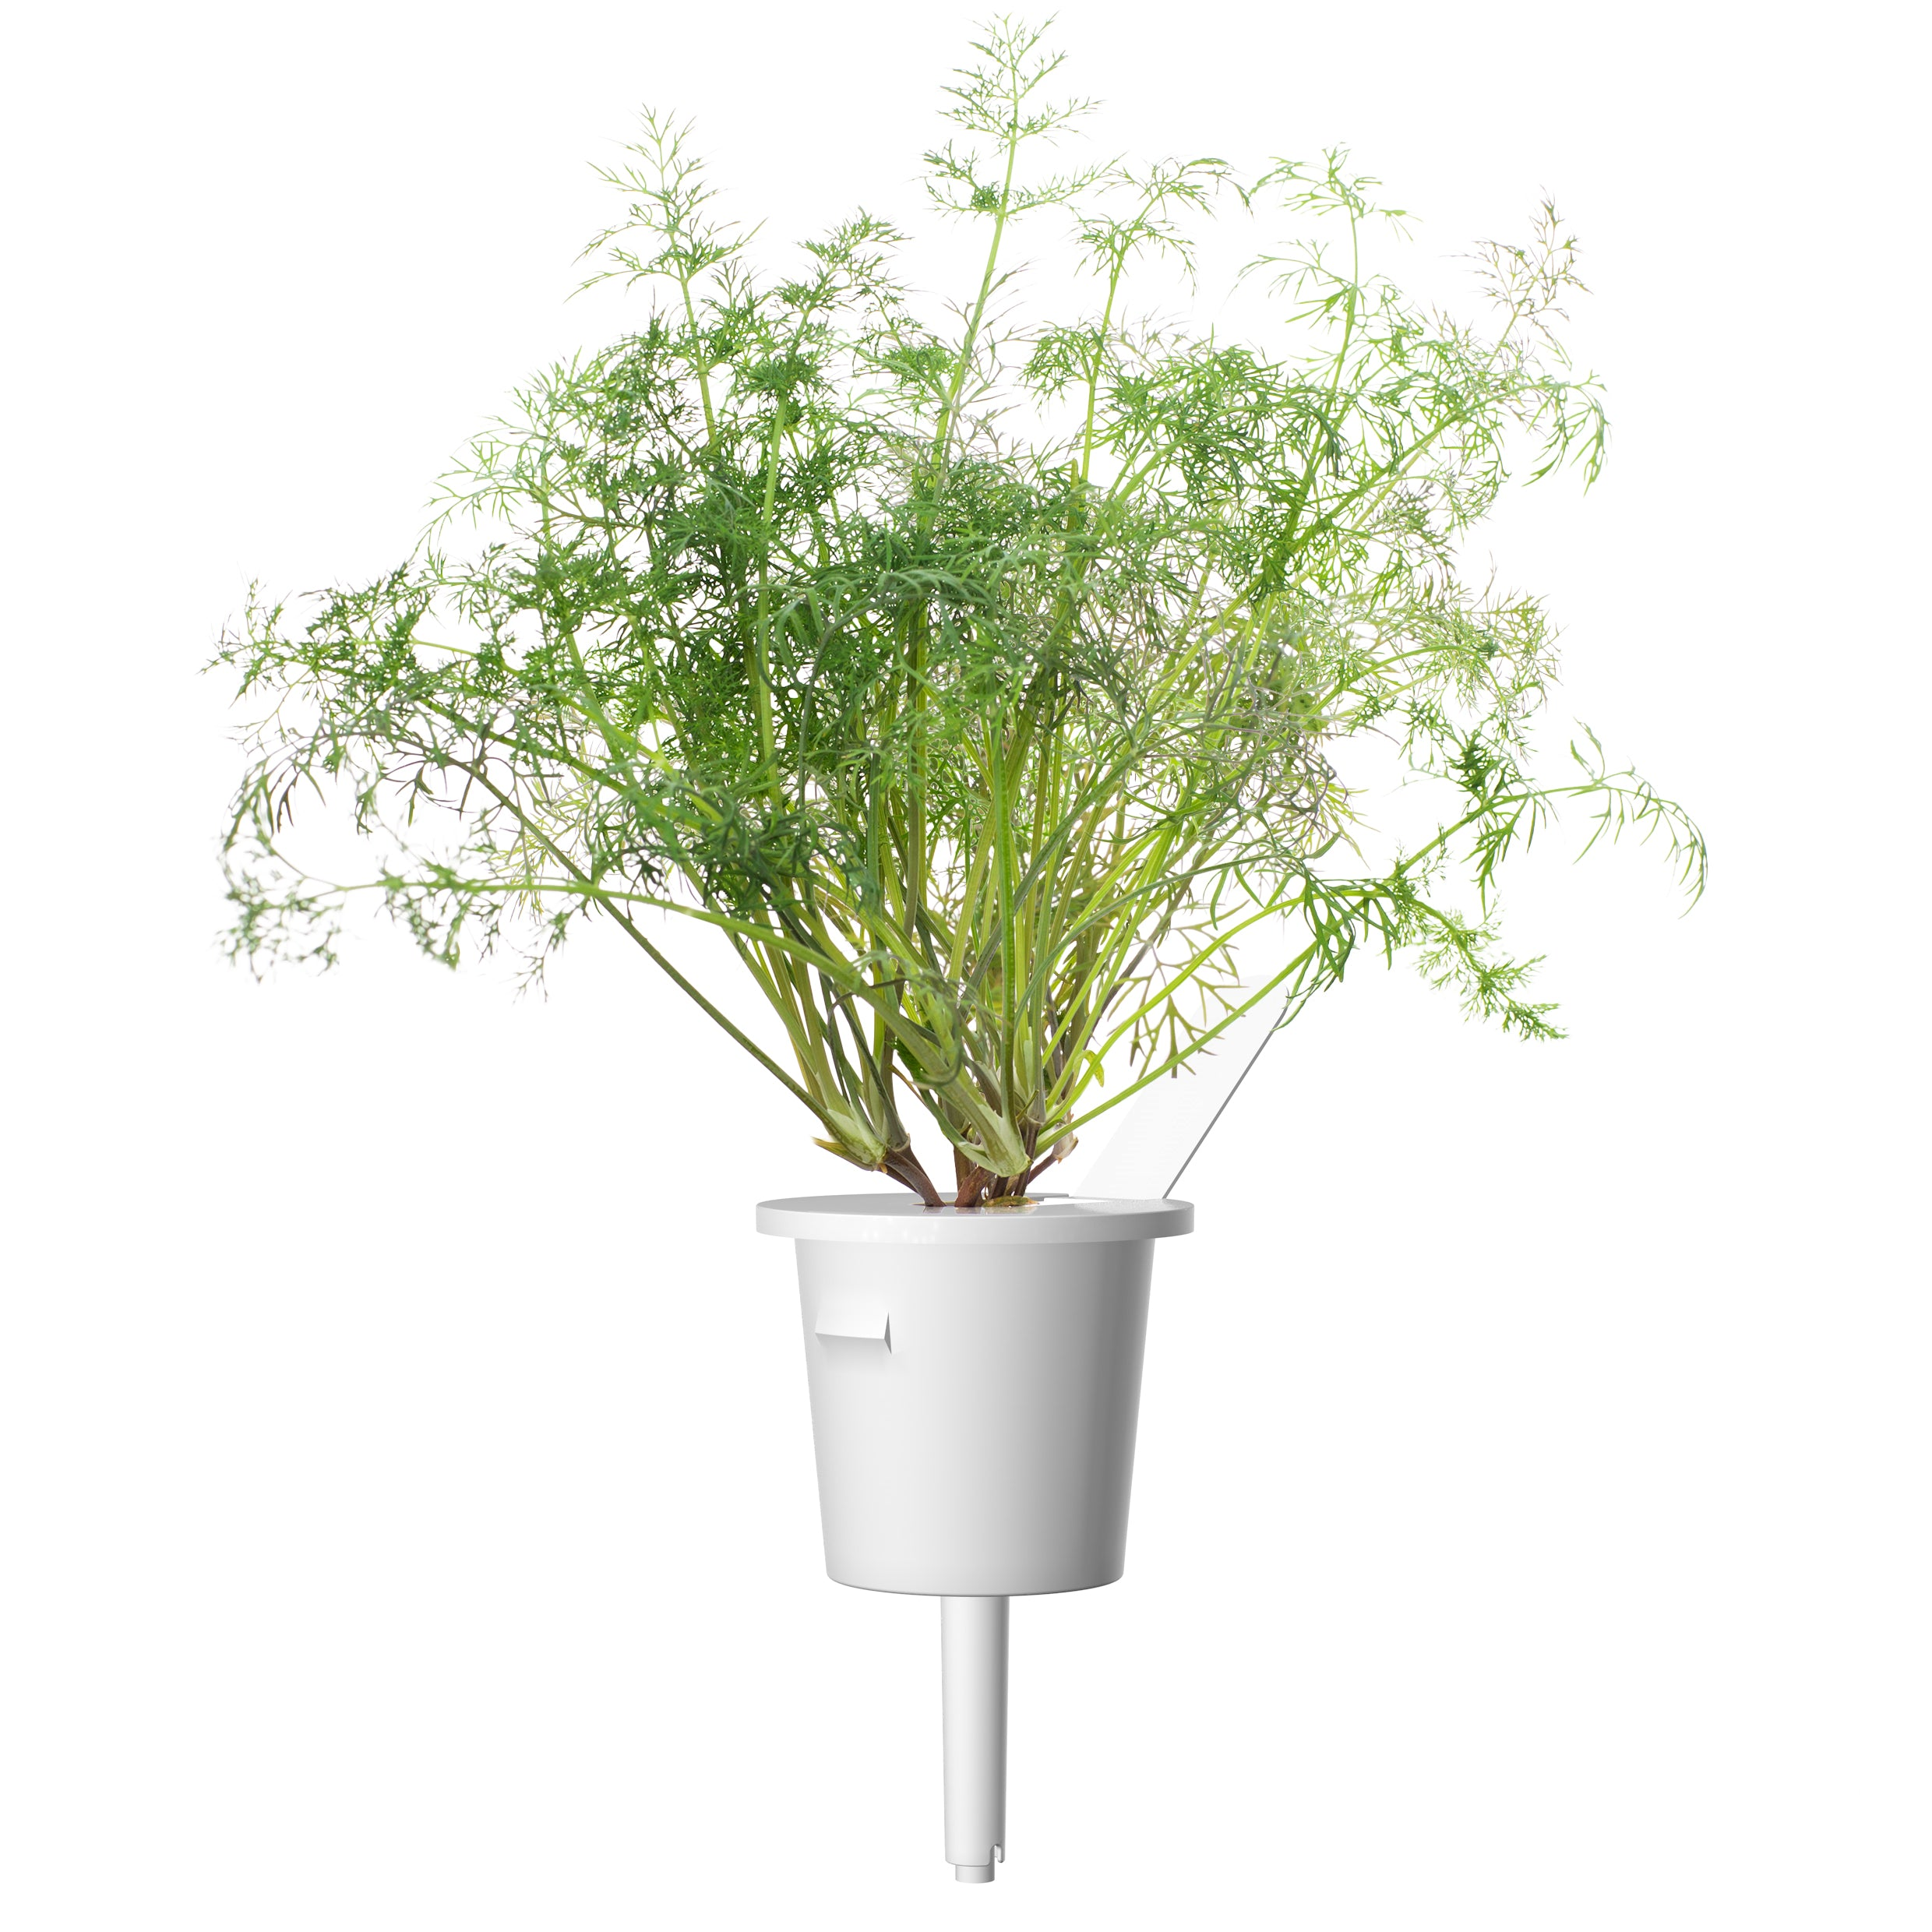 Dill (Anethum graveolens) plant pod - Click & Grow indoor garden - grow dill at home